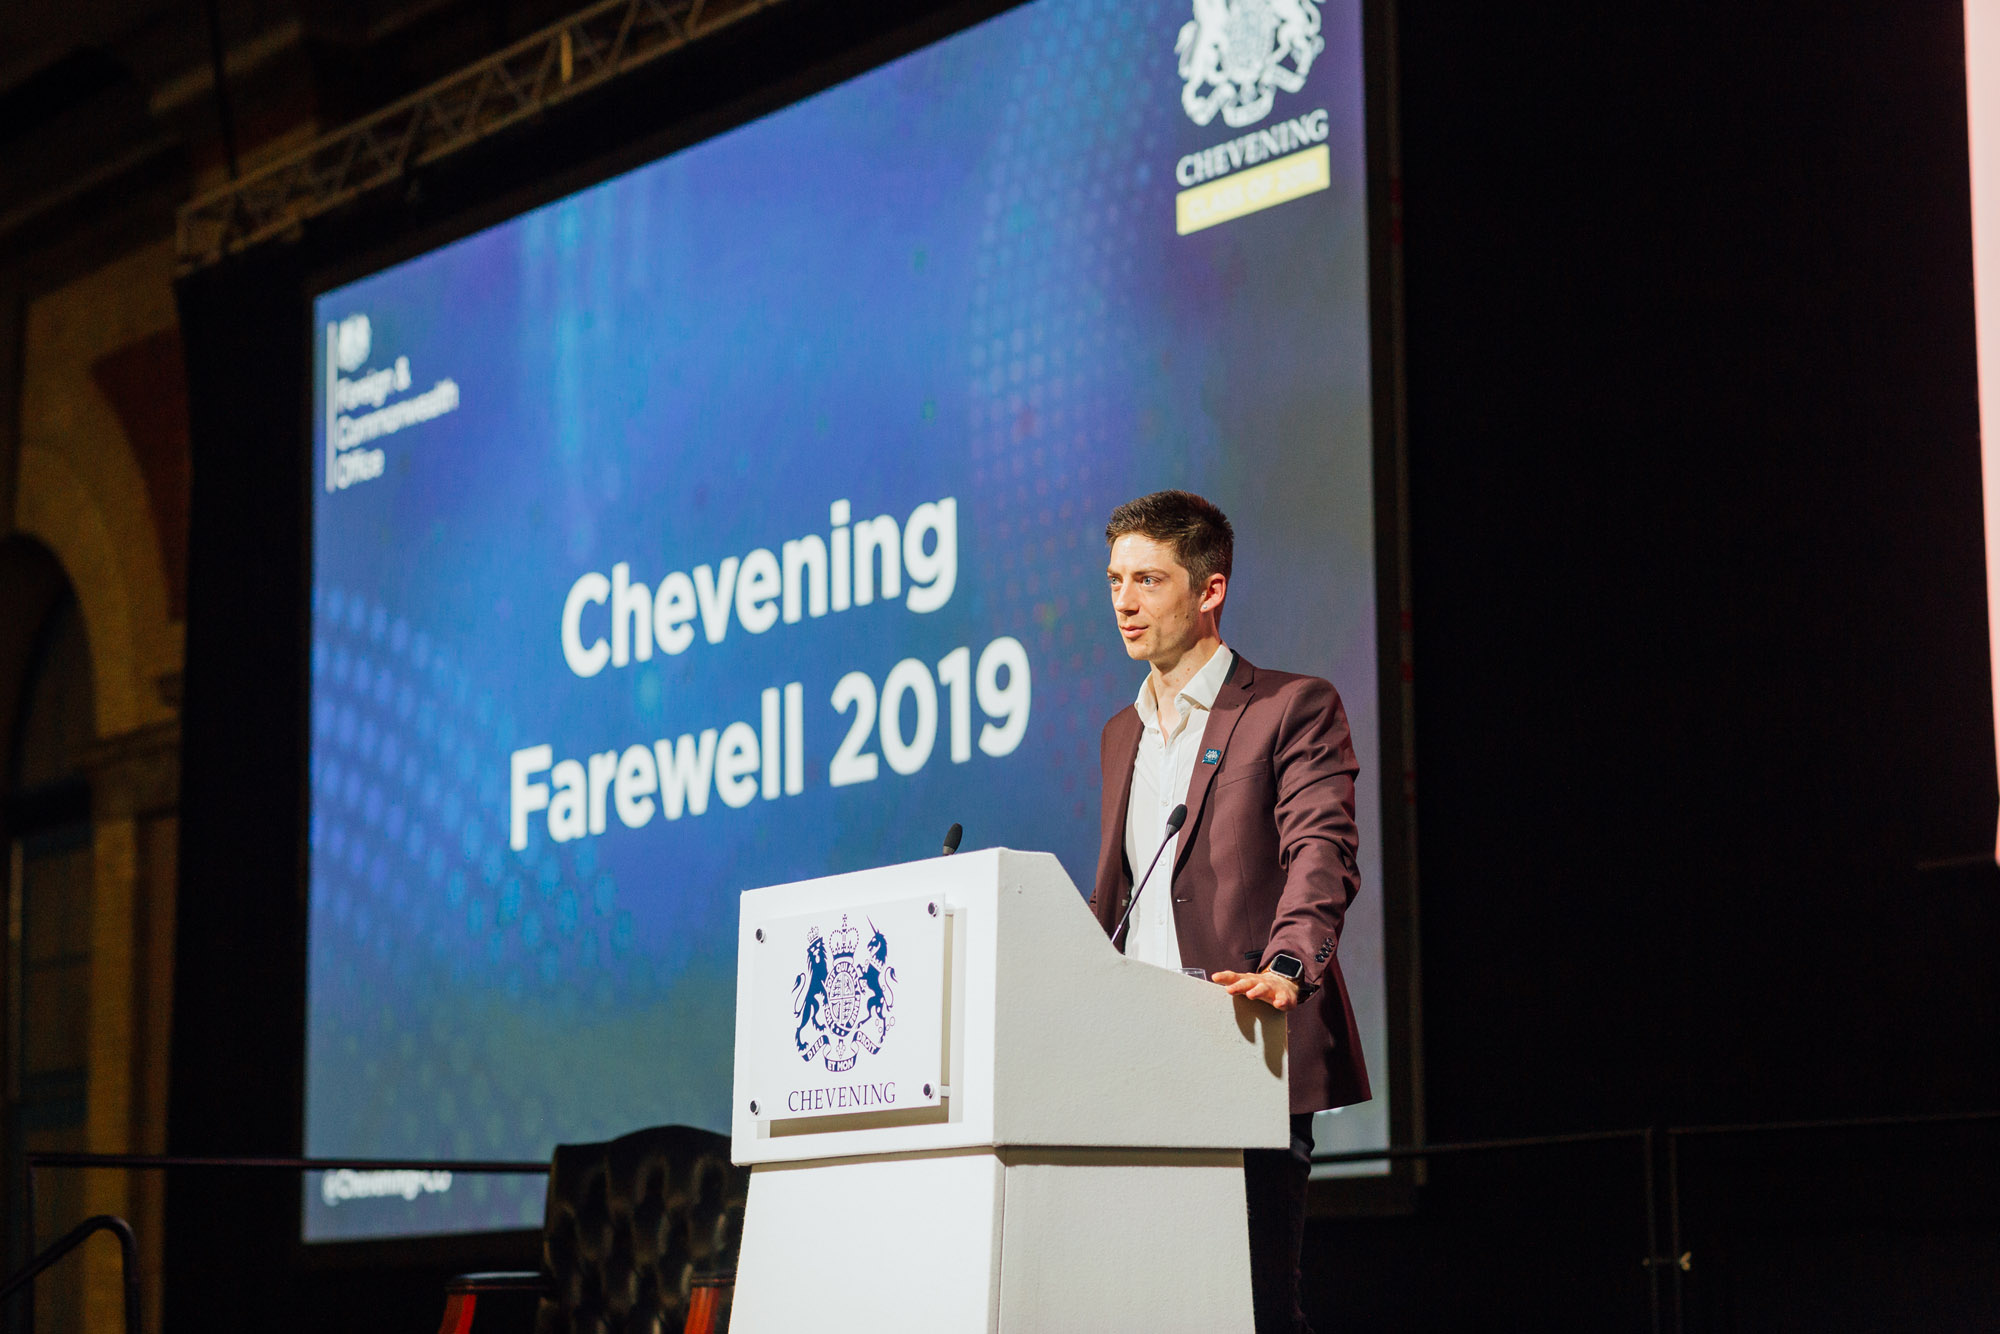 Farewell to Chevening